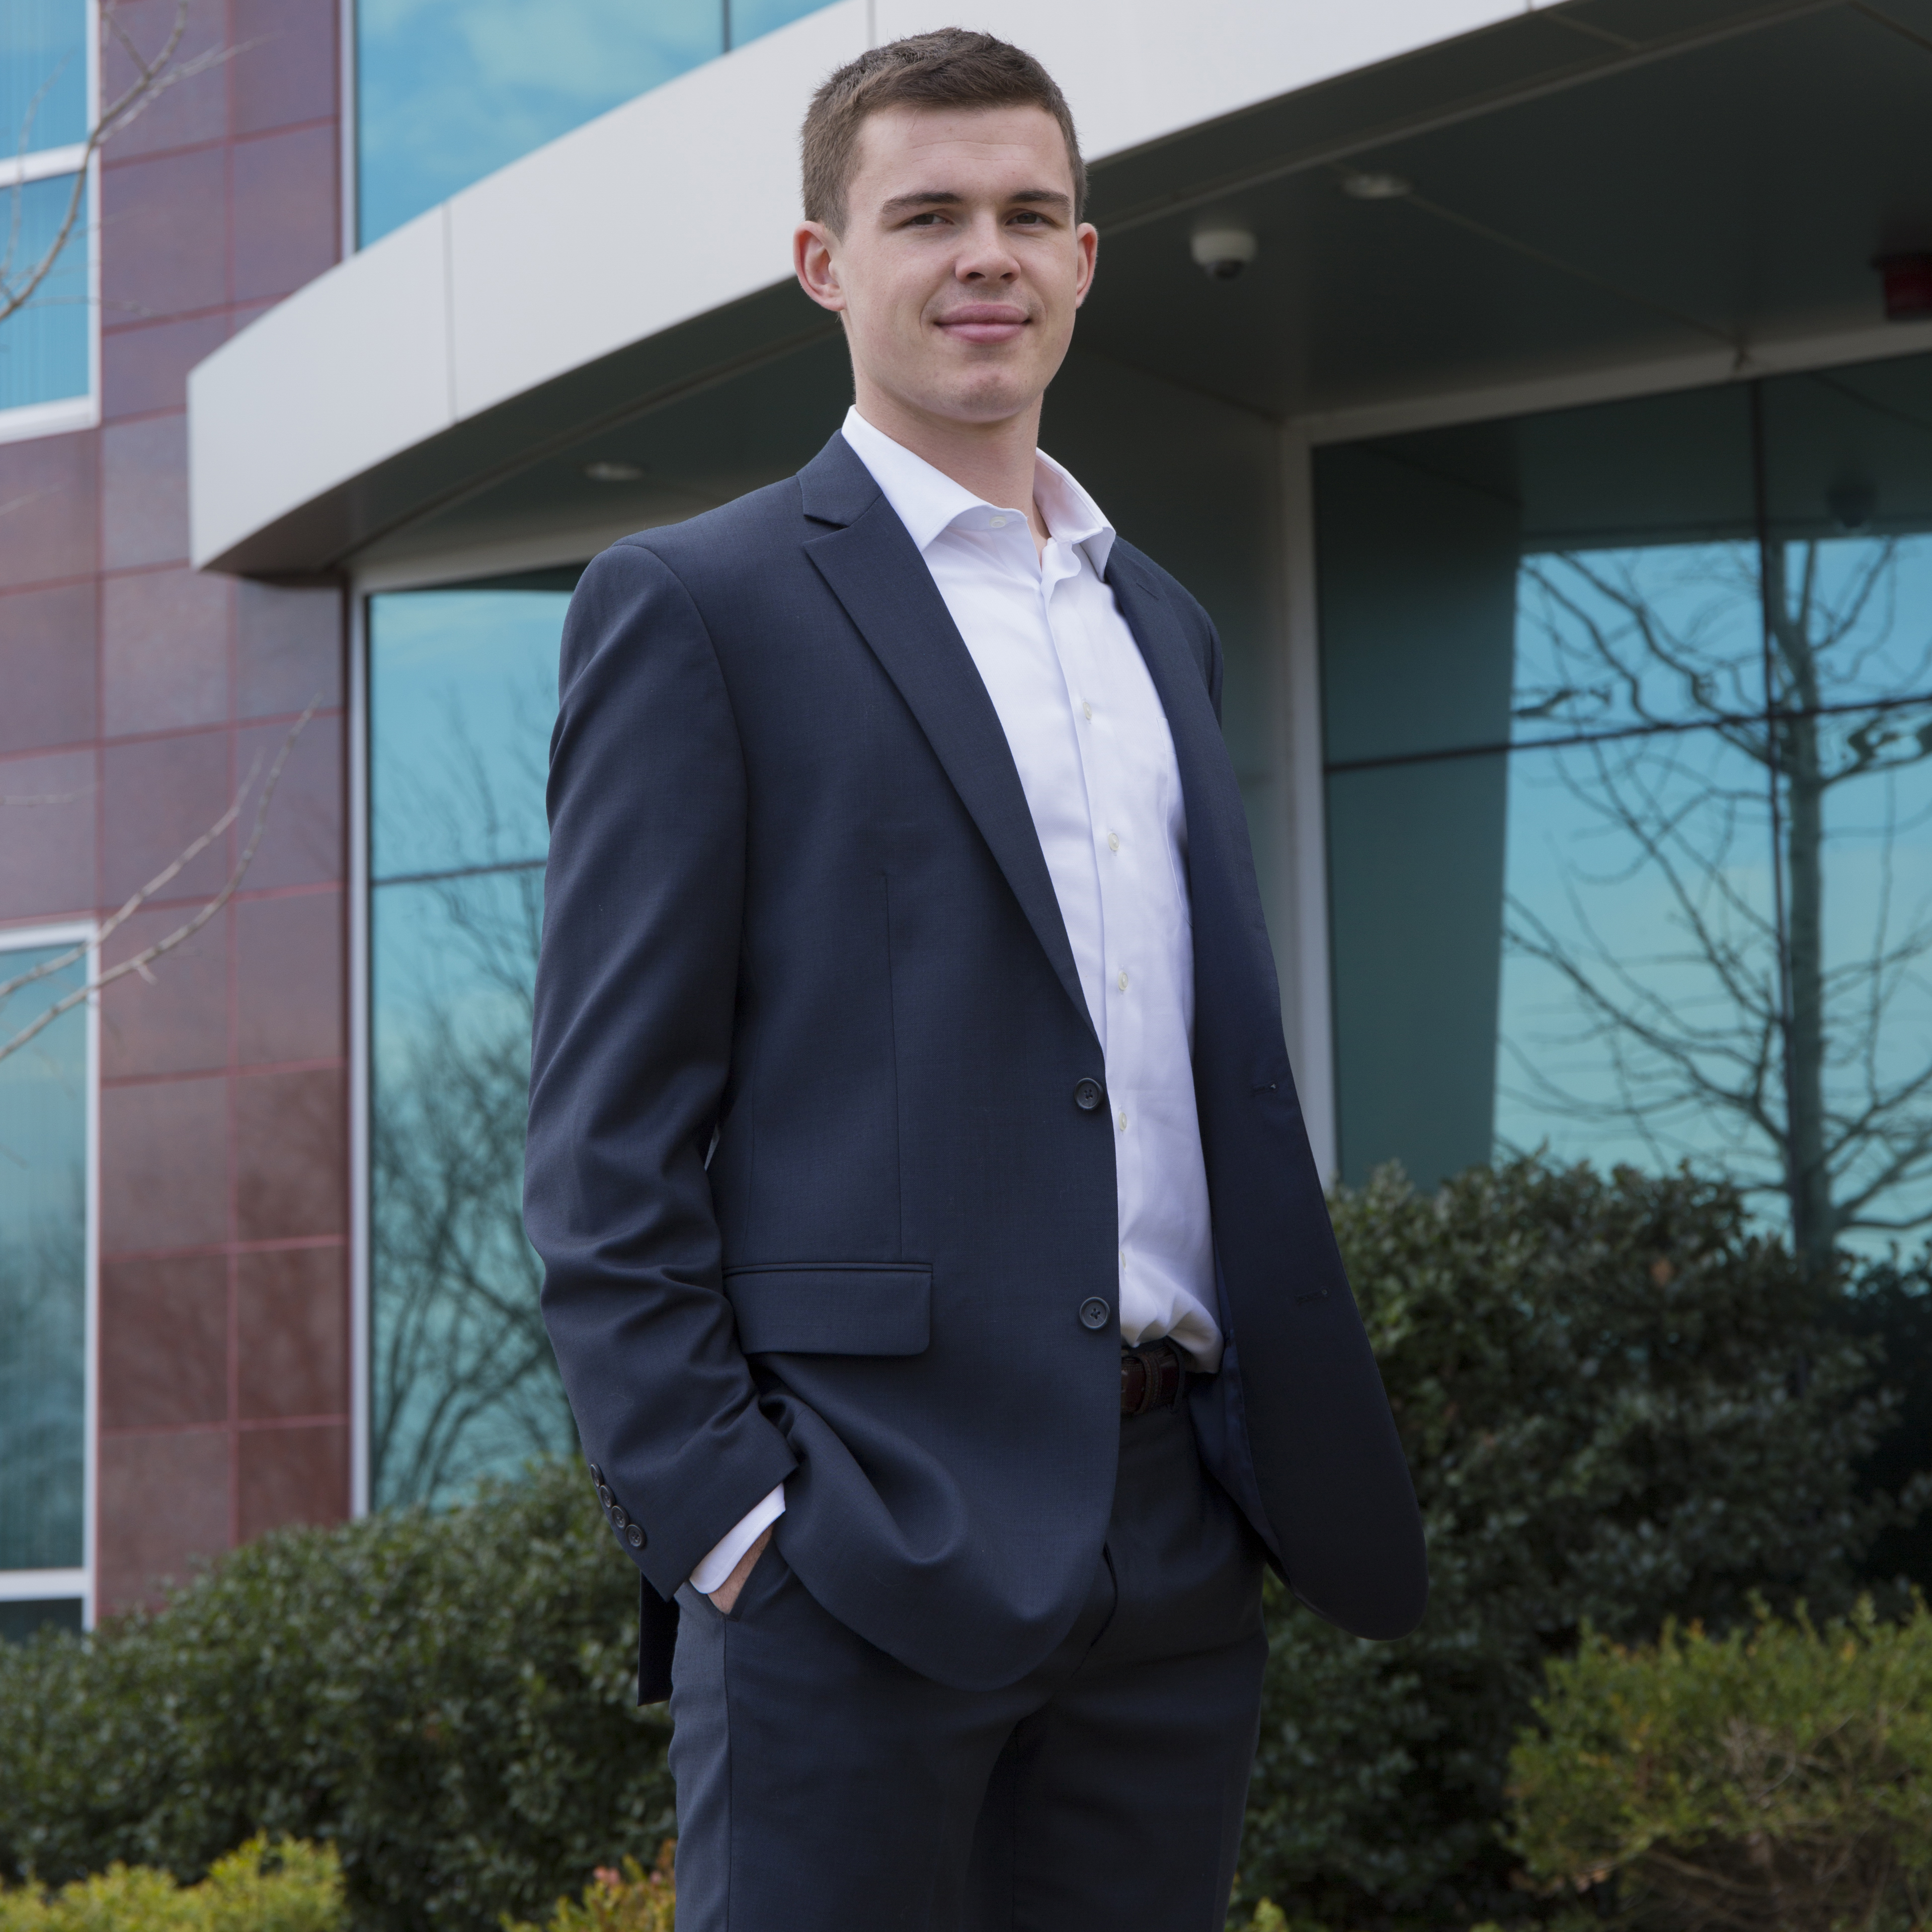 student in suit standing outside of internship building